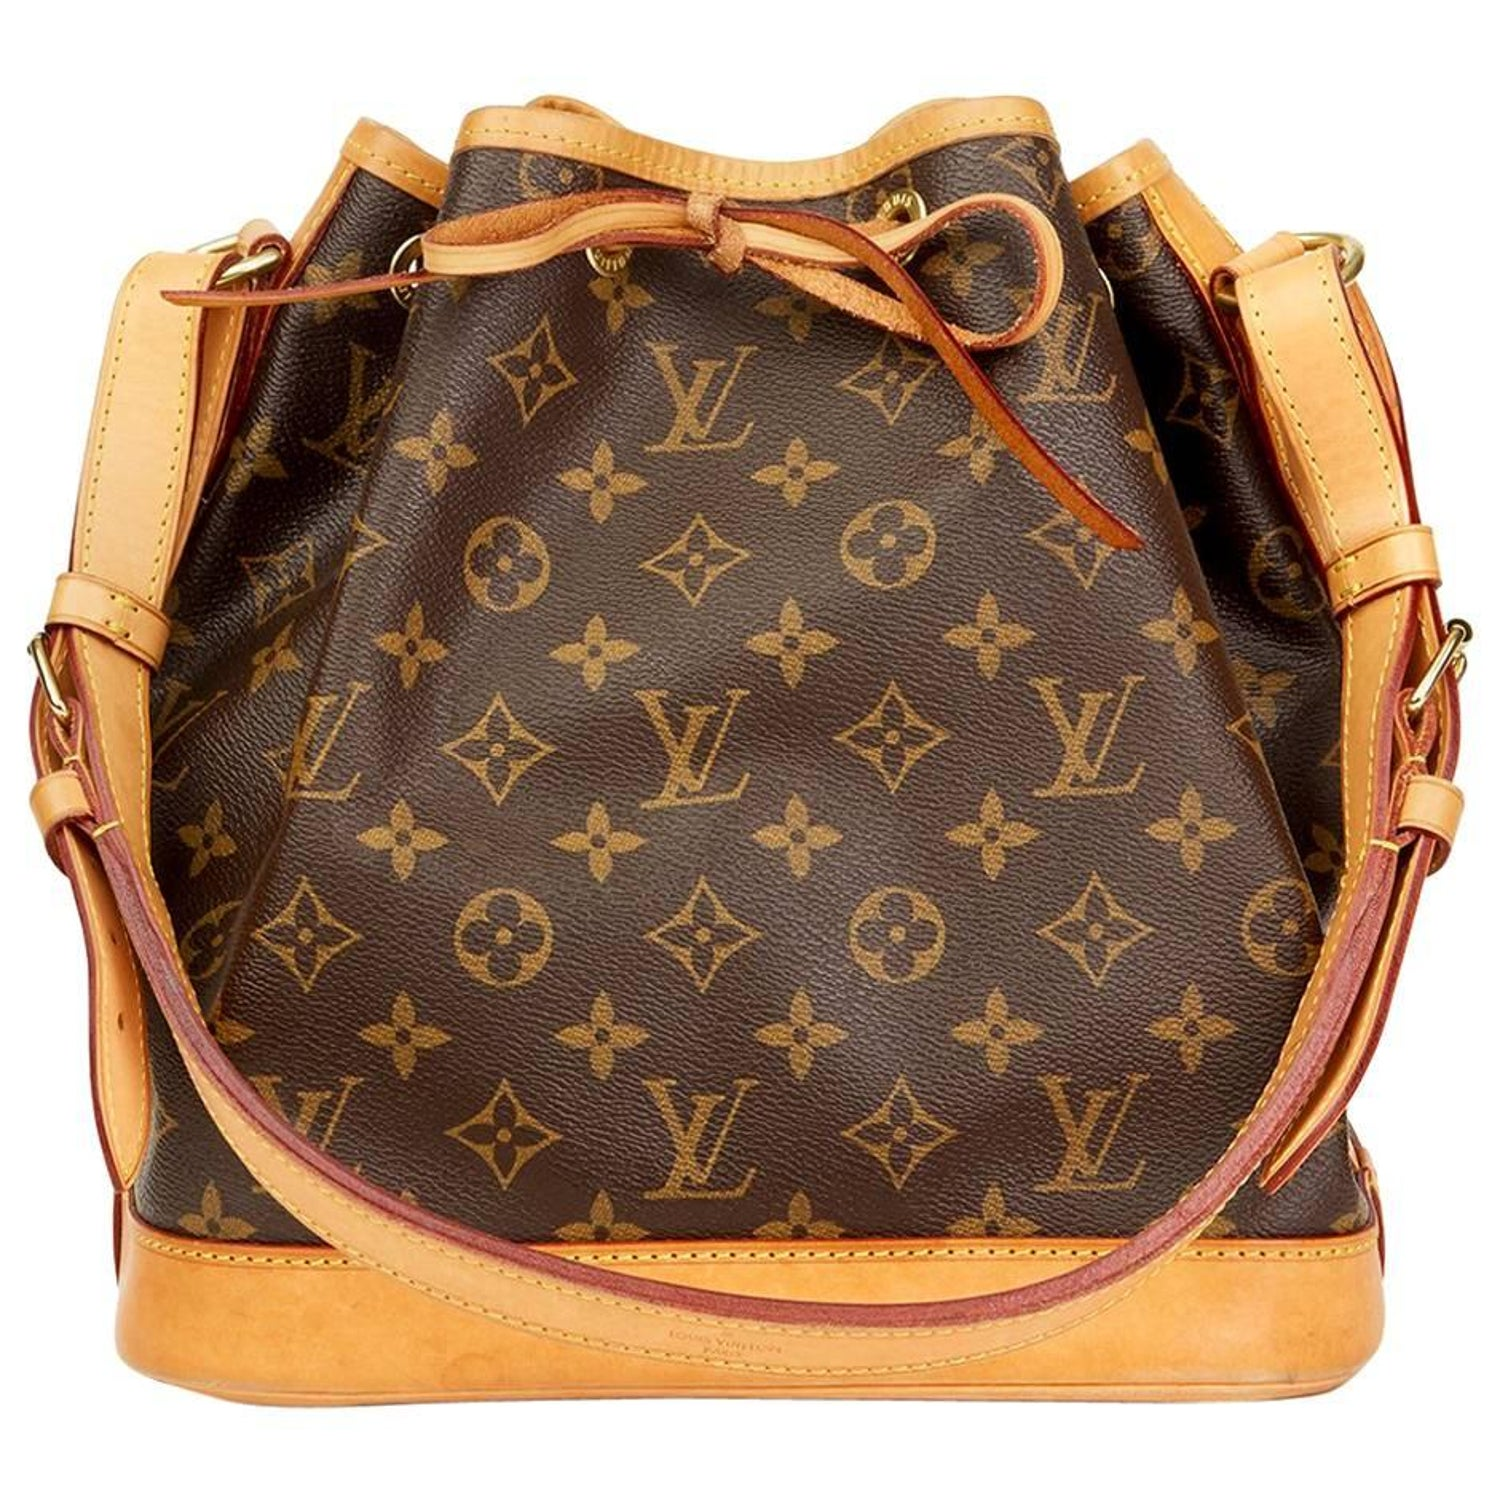 bfed5c73f8aa 2016 Louis Vuitton Brown Classic Monogram Canvas Petit Noe at 1stdibs